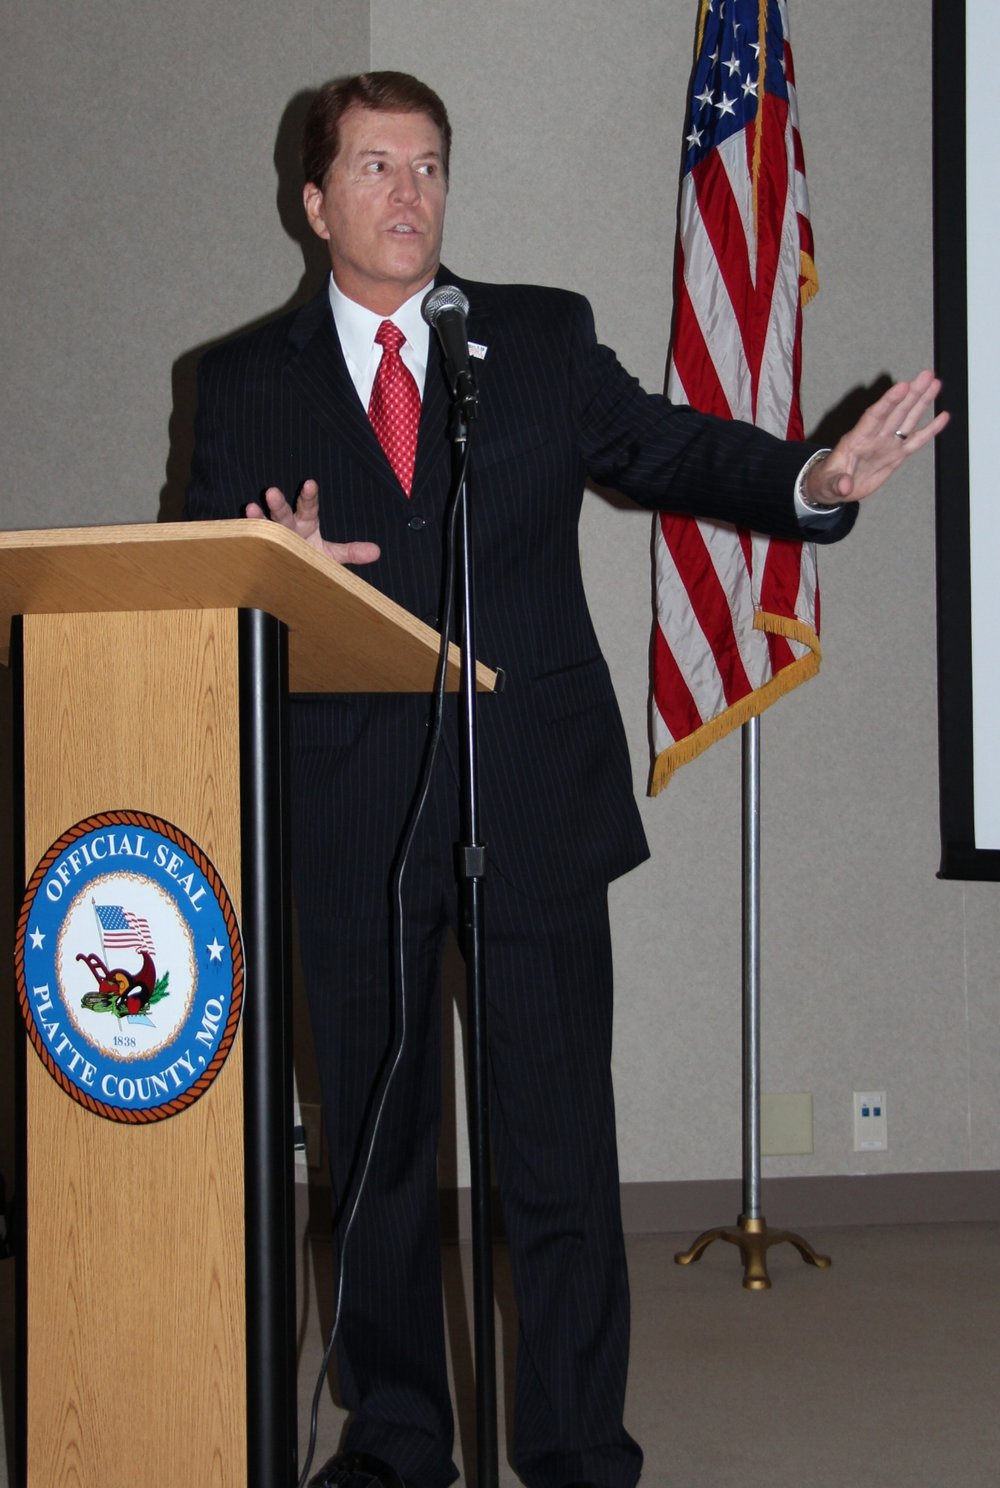 ROSS MARTIN/Citizen photo Craig Hill spoke at the 12th annual Platte County Prosecutor's Office Victims' Rights luncheon Friday, April 7 at the Platte County Resource Center in Kansas City, Mo.